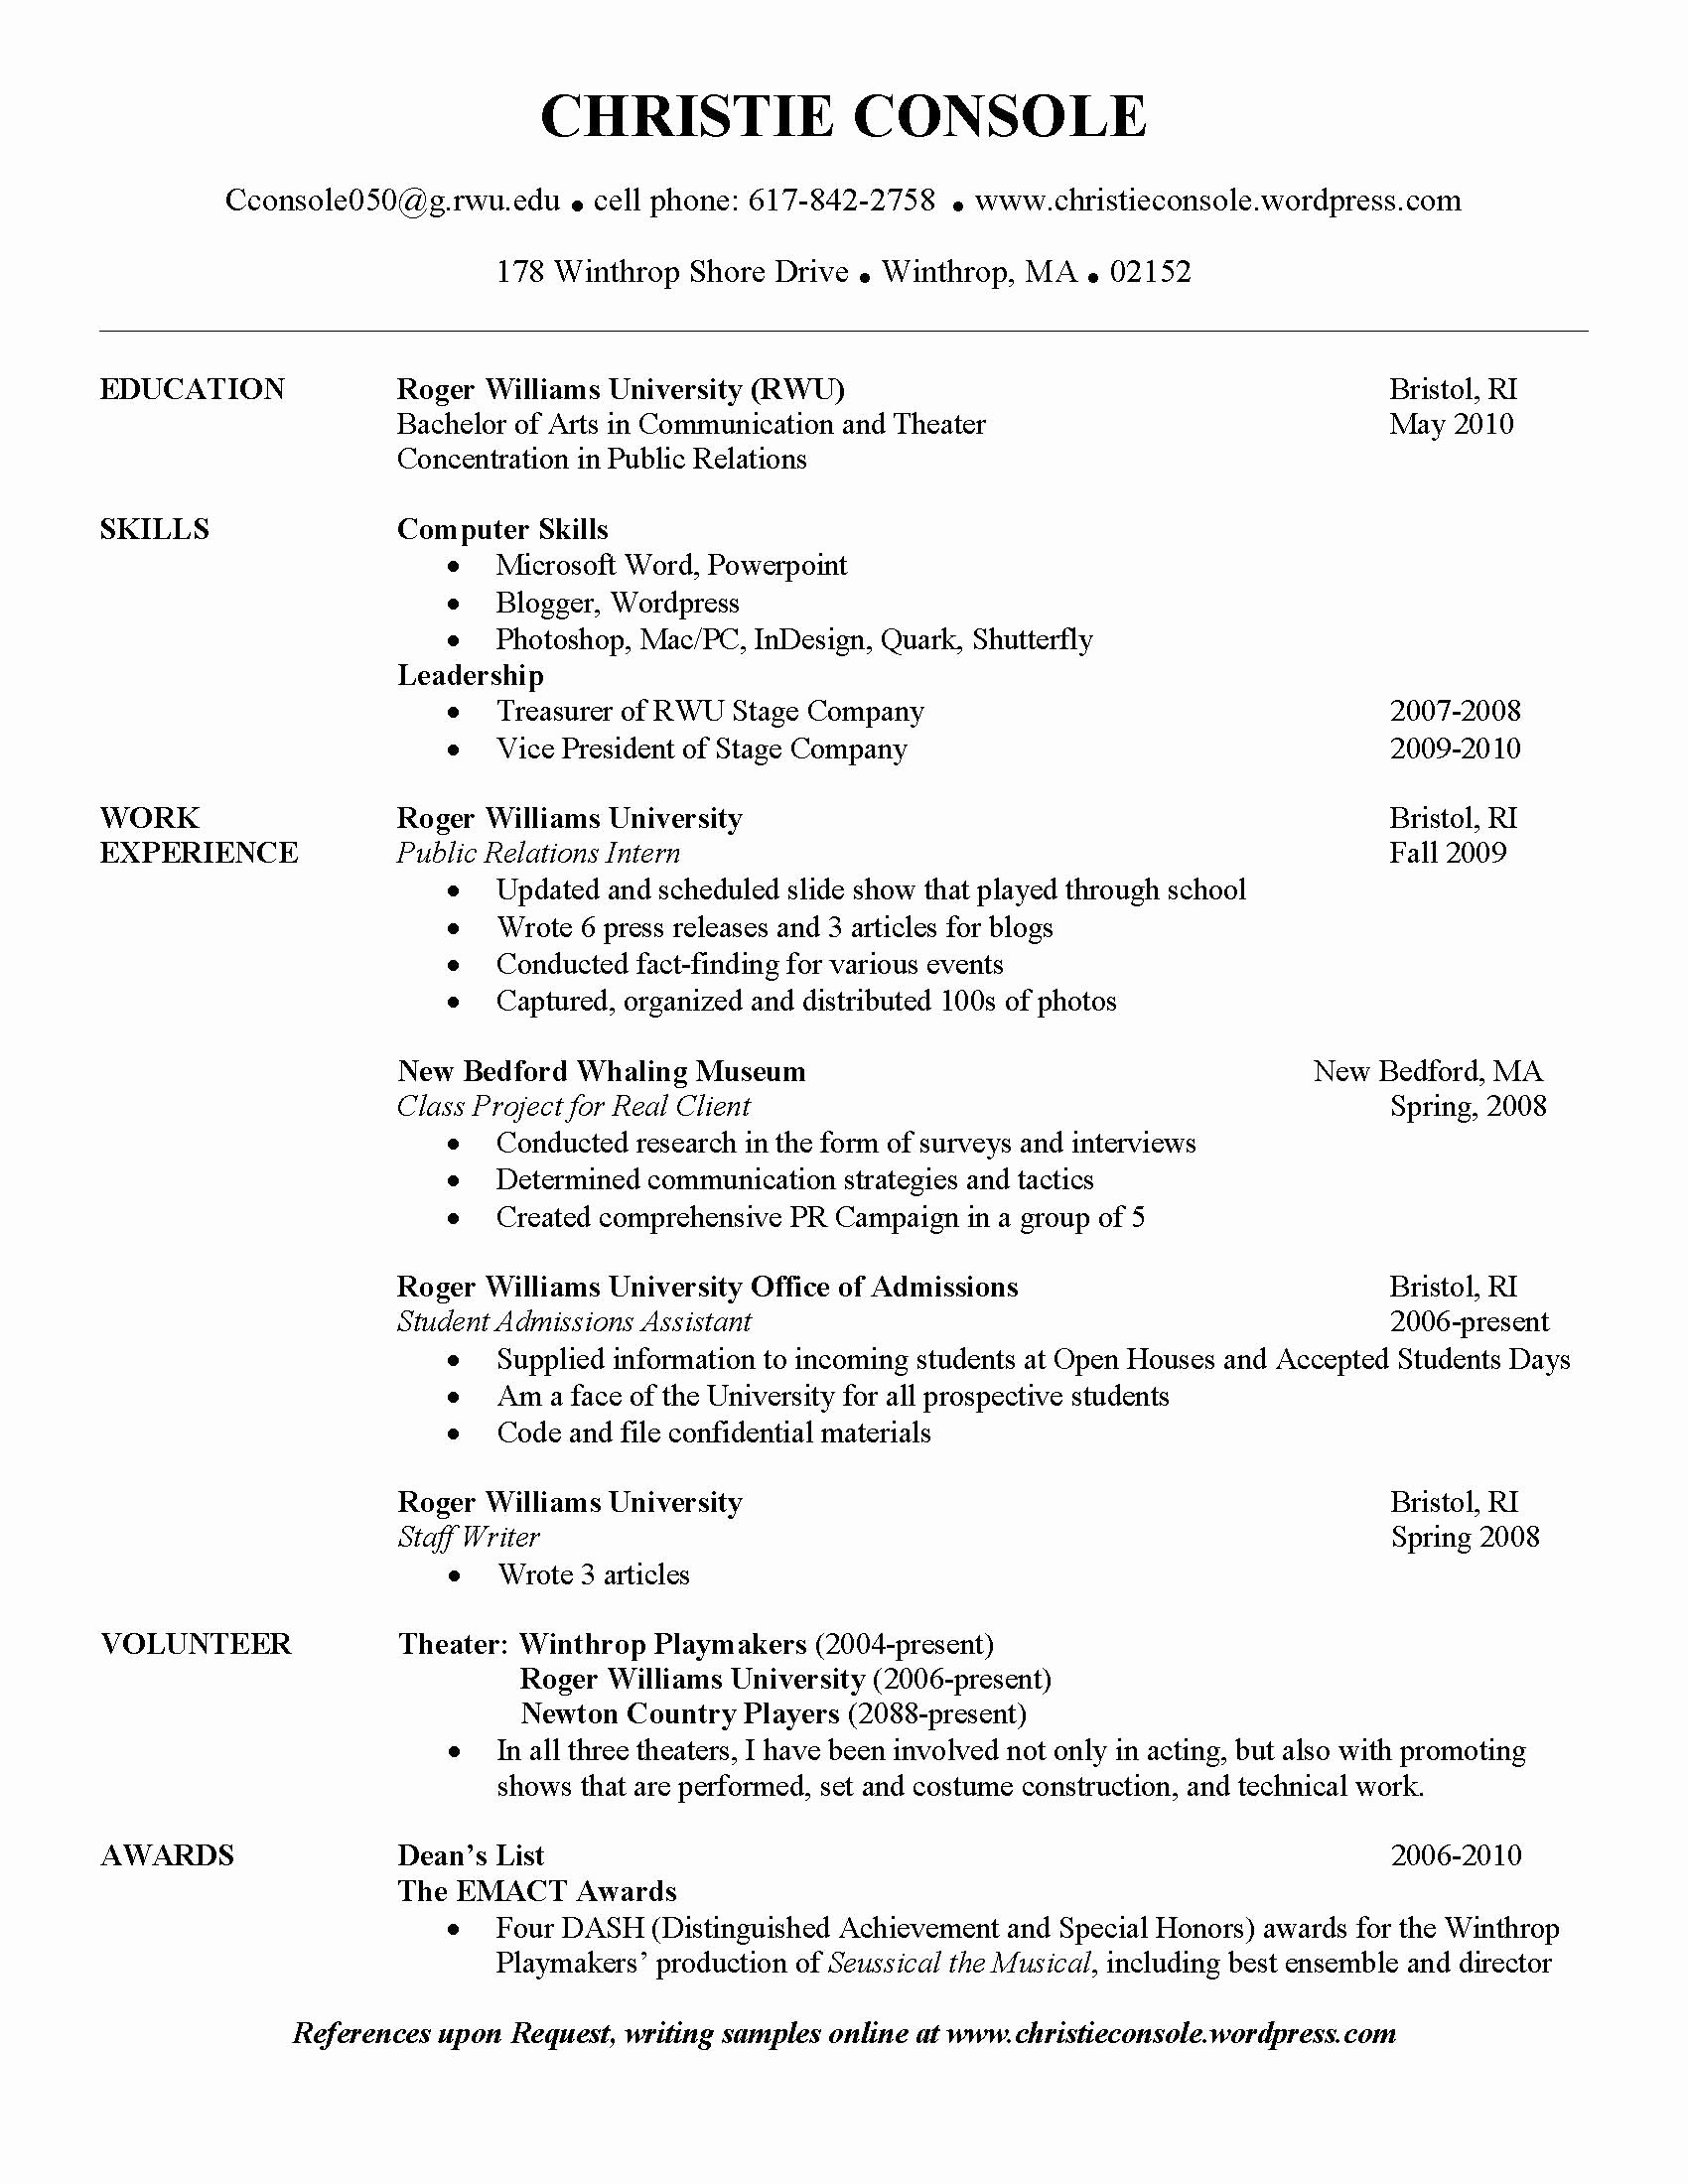 Public Relations Resume Template New Pr Resume[1]